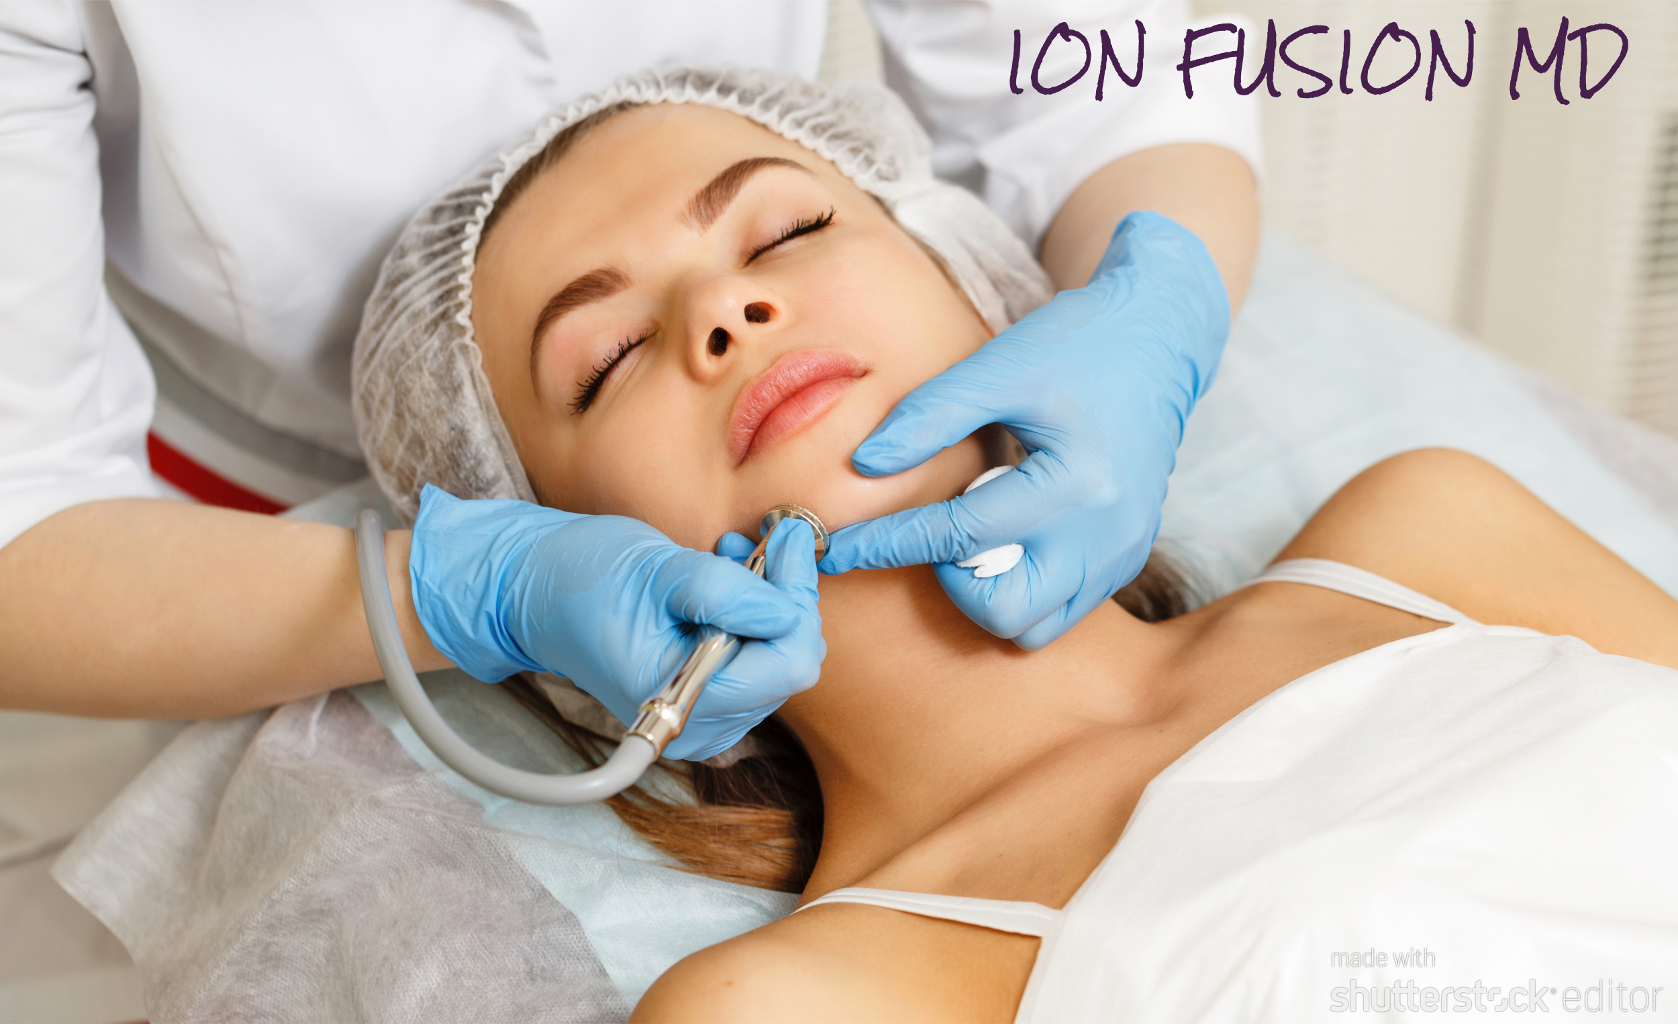 ION FUSION MD FACE REJUVENATION